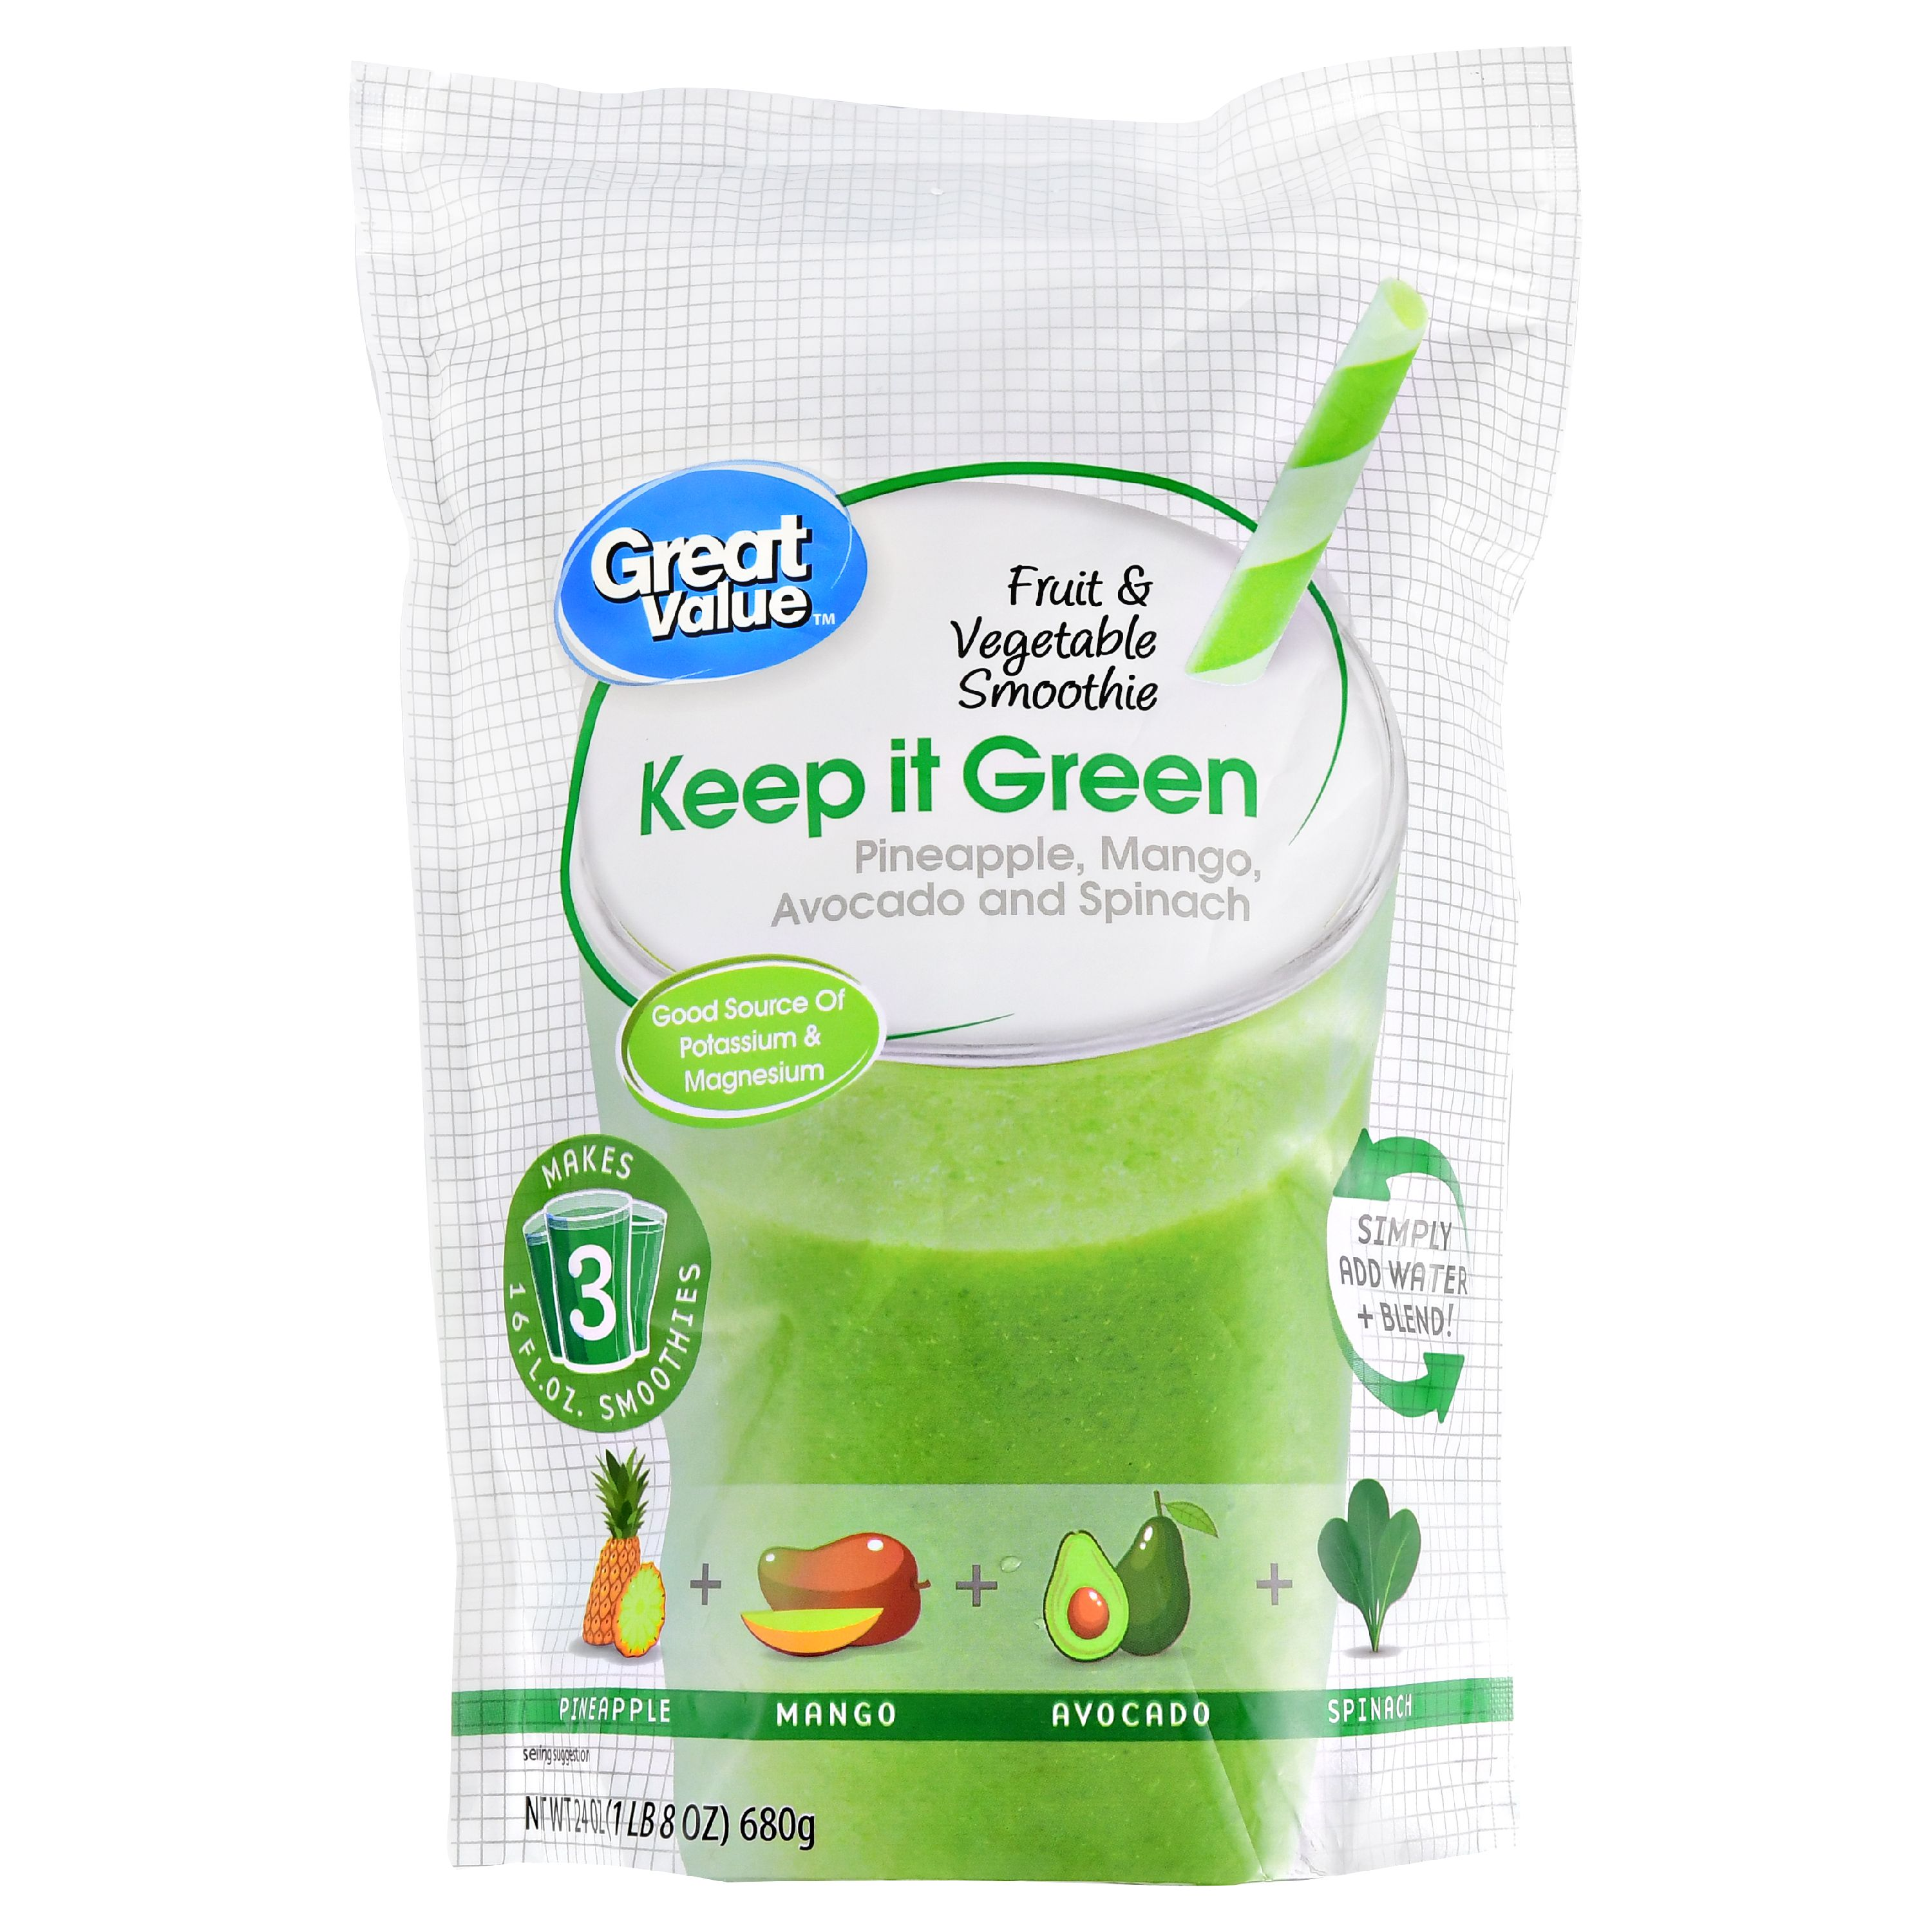 Great Value Fruit & Vegetable Smoothie, Keep it Green, 24 oz